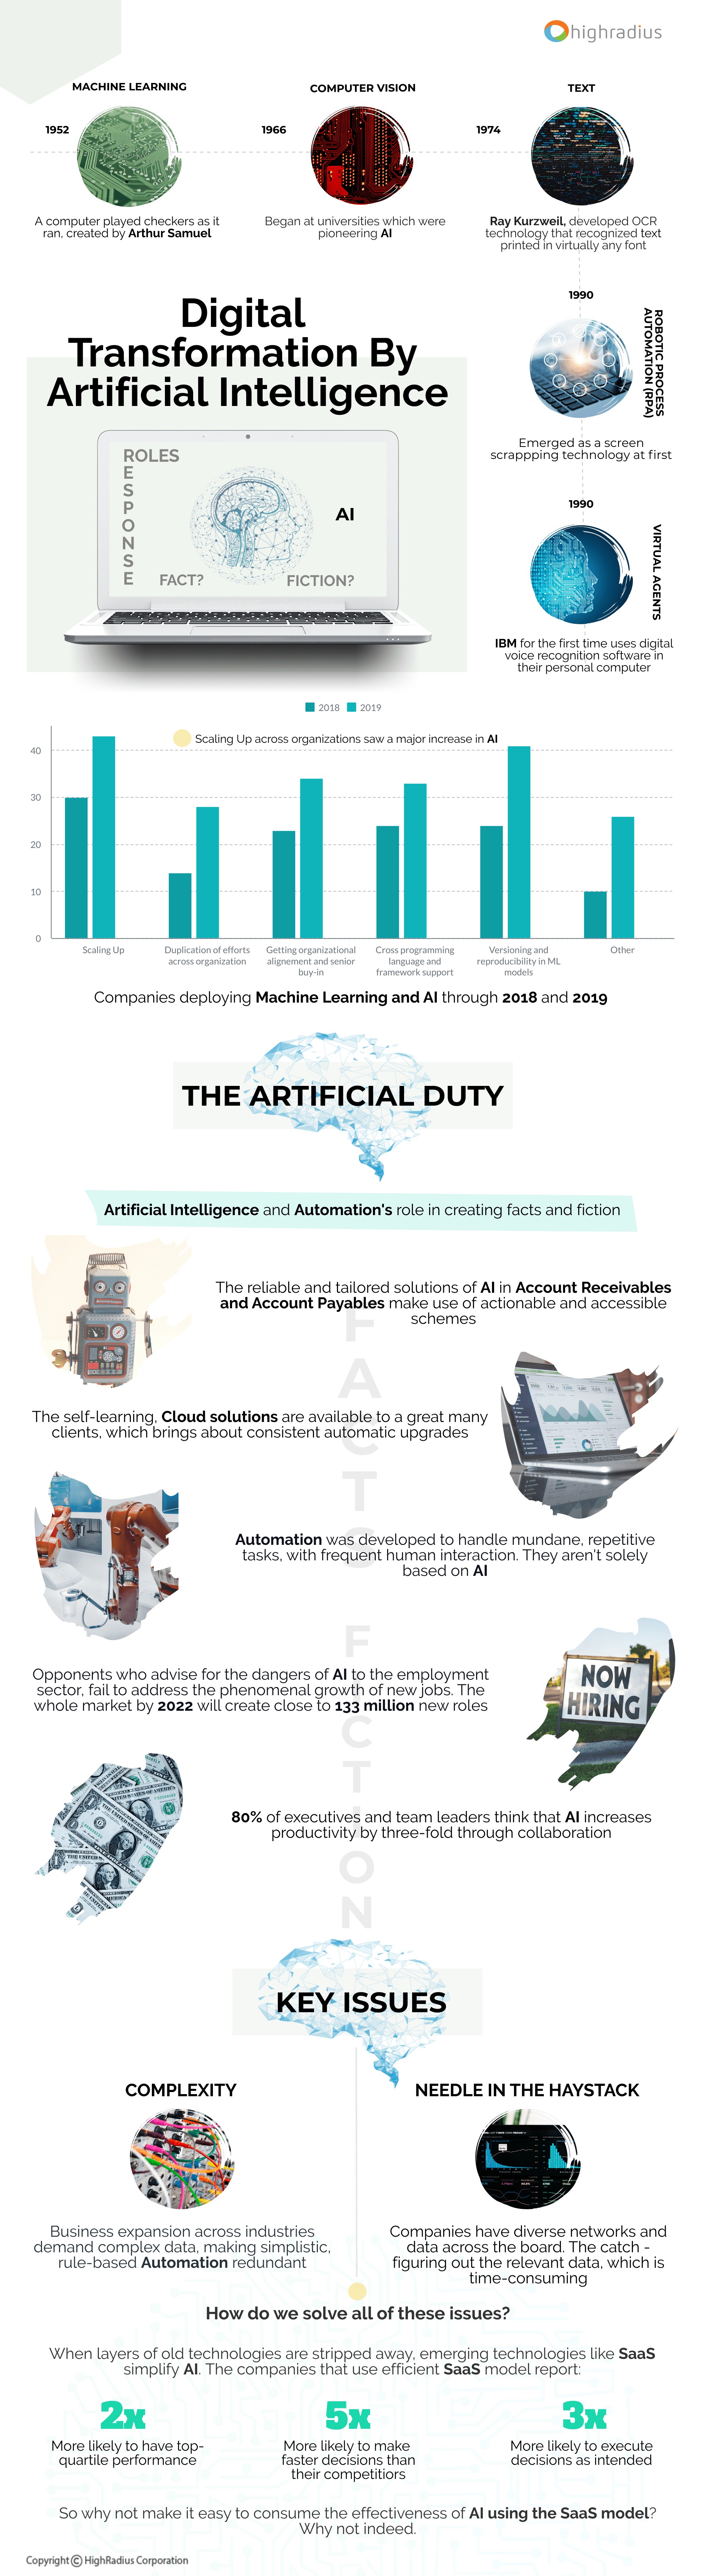 Digital Transformation By AI